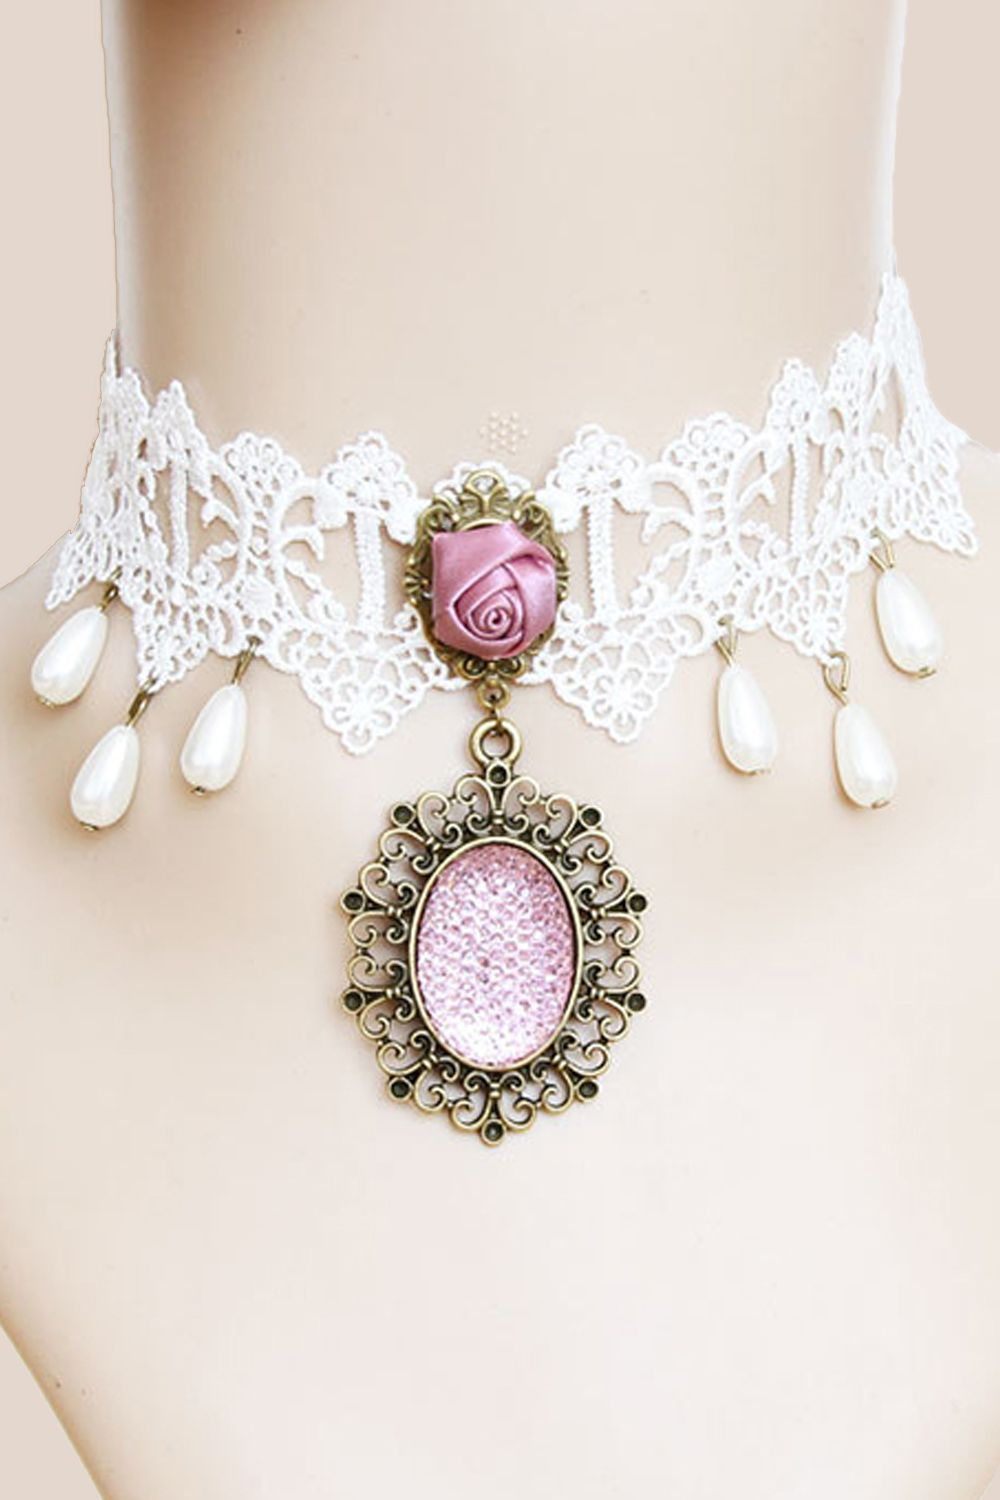 Accessorize your Victorian inspired look with our Atomic White Lace and Pink Rose Choker Necklace with Pendant.   https://atomicjaneclothing.com/products/atomic-white-lace-and-pink-rose-choker-necklace-with-pendant